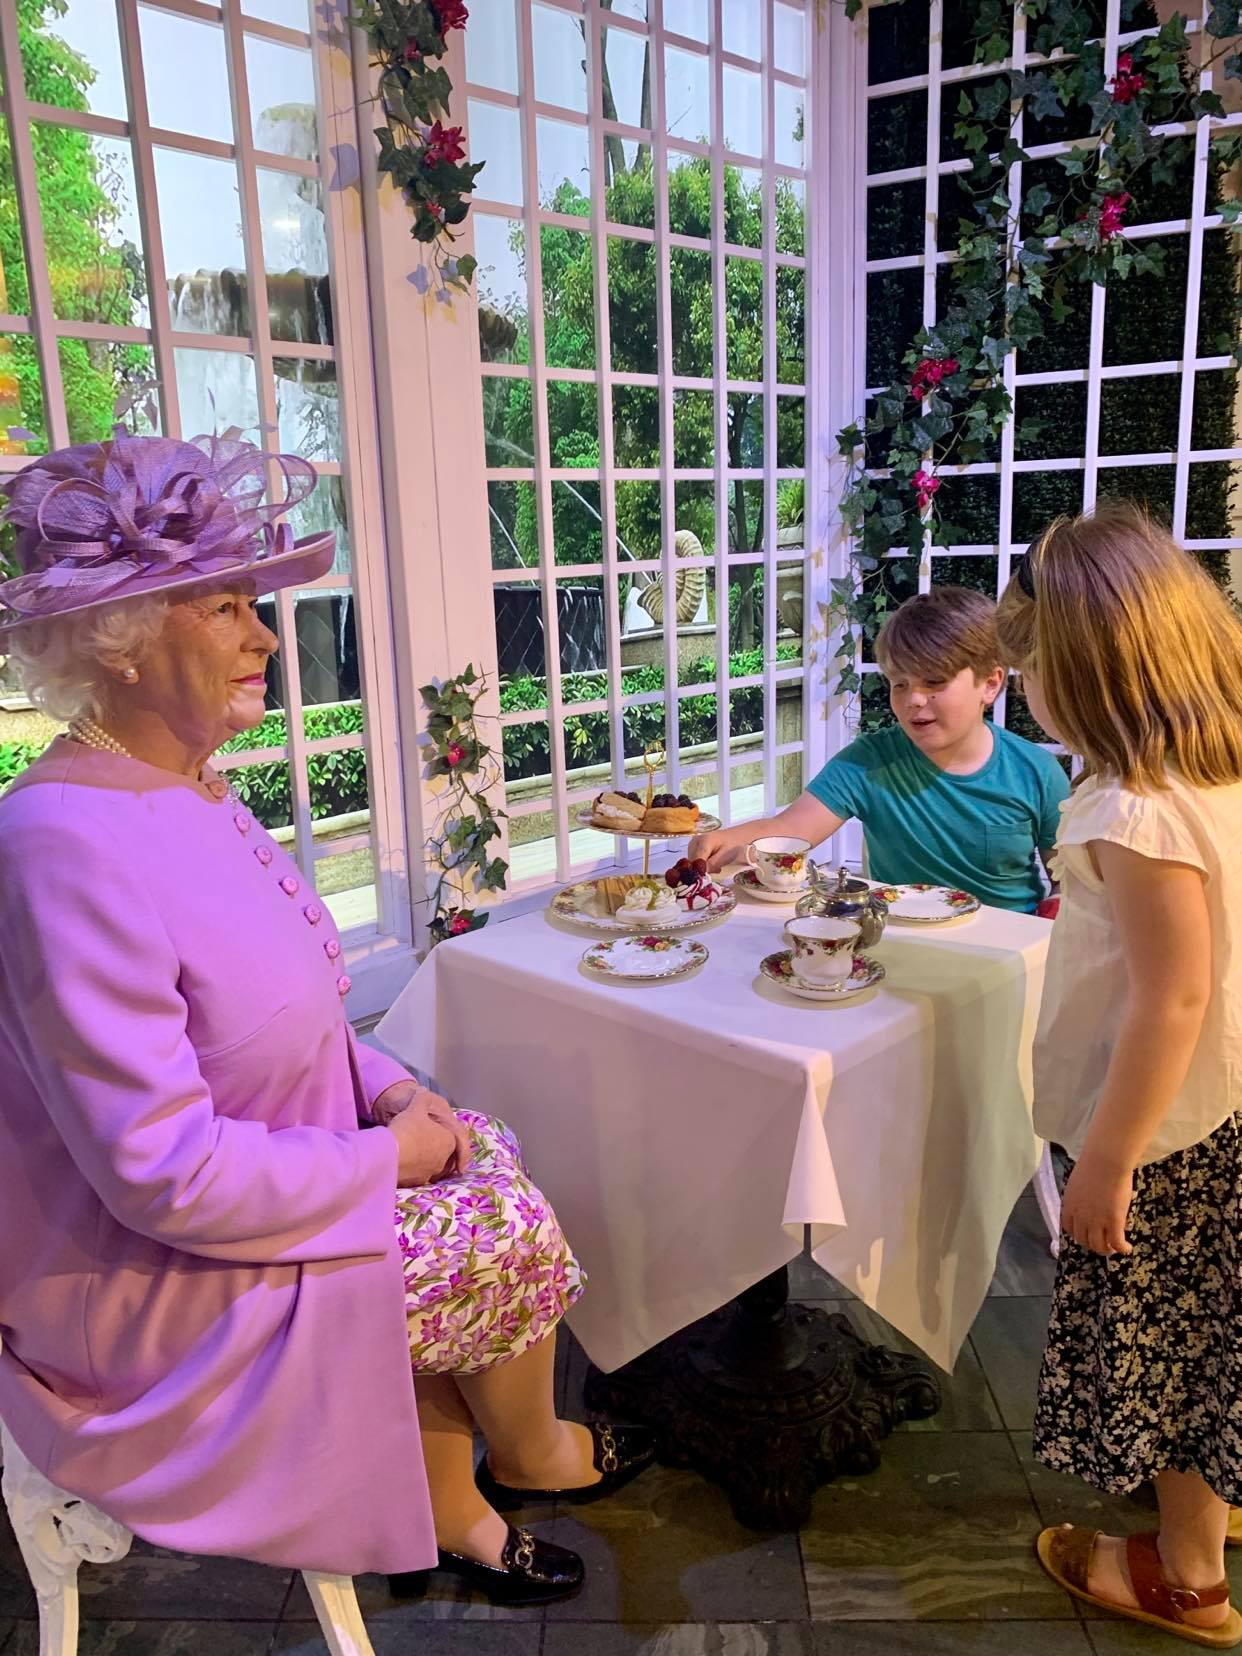 36 hours in london with kids, meeting the queen at madame tussauds